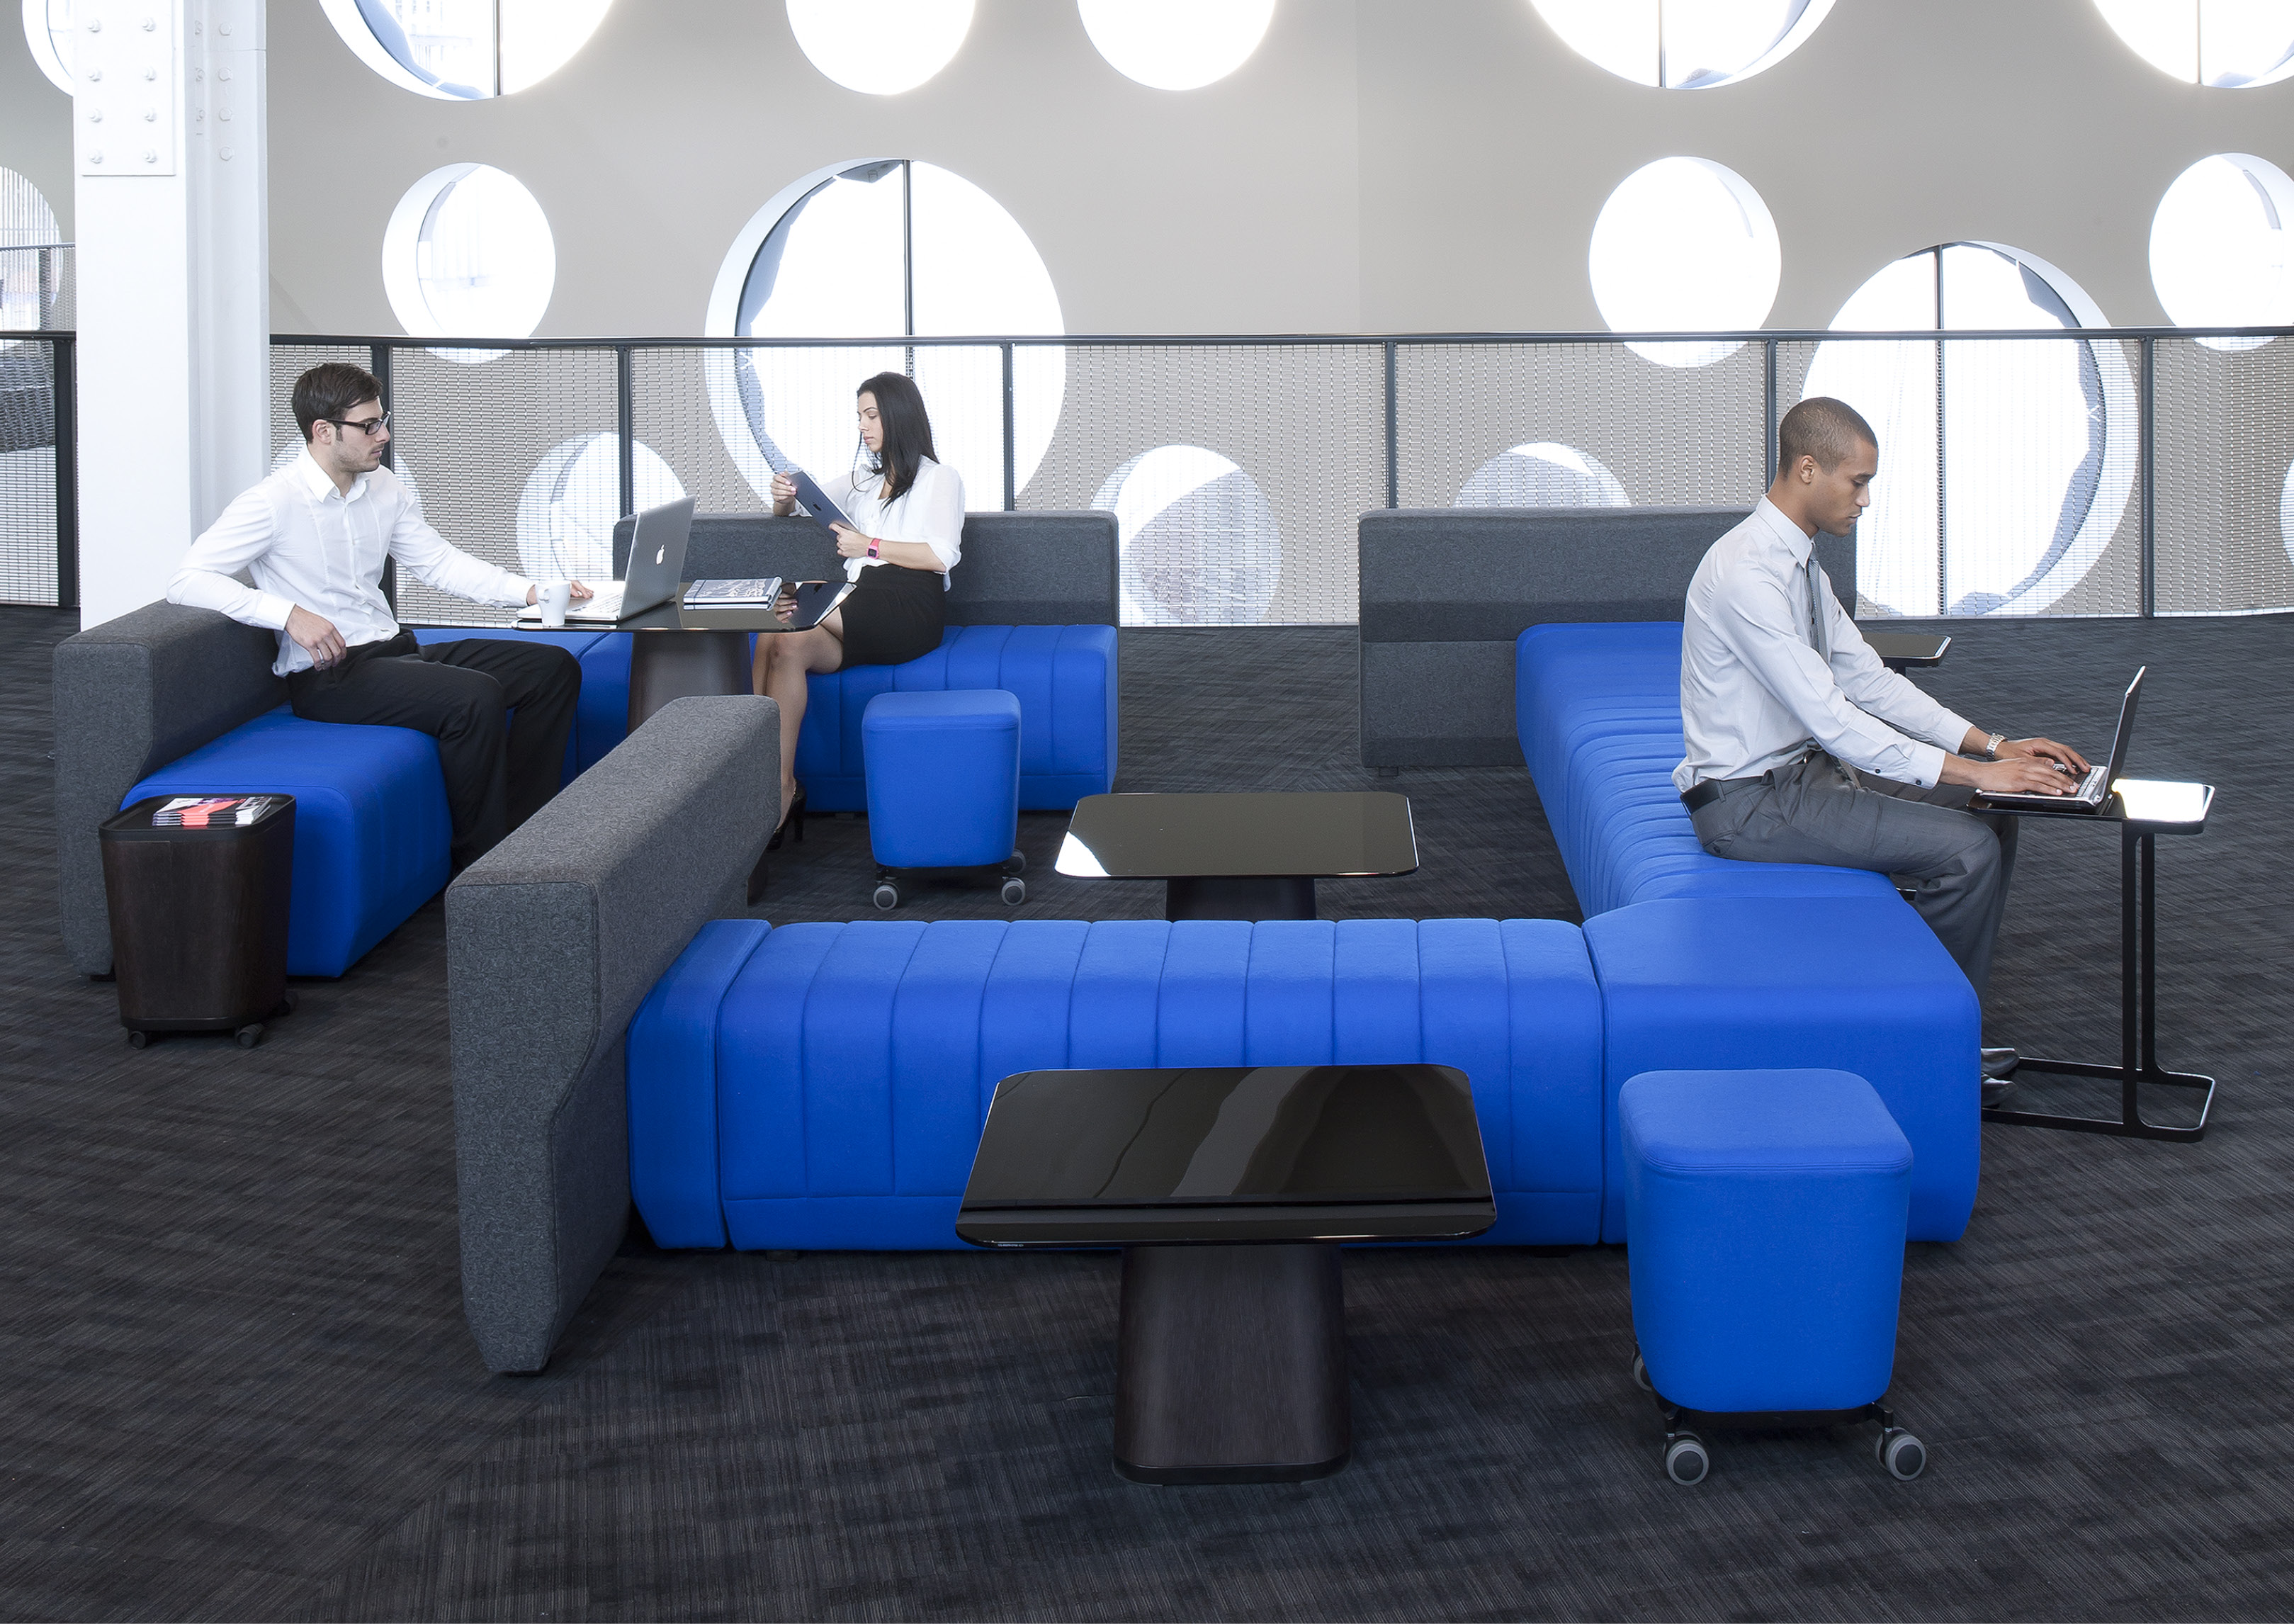 Design your office to encourage more interactions.